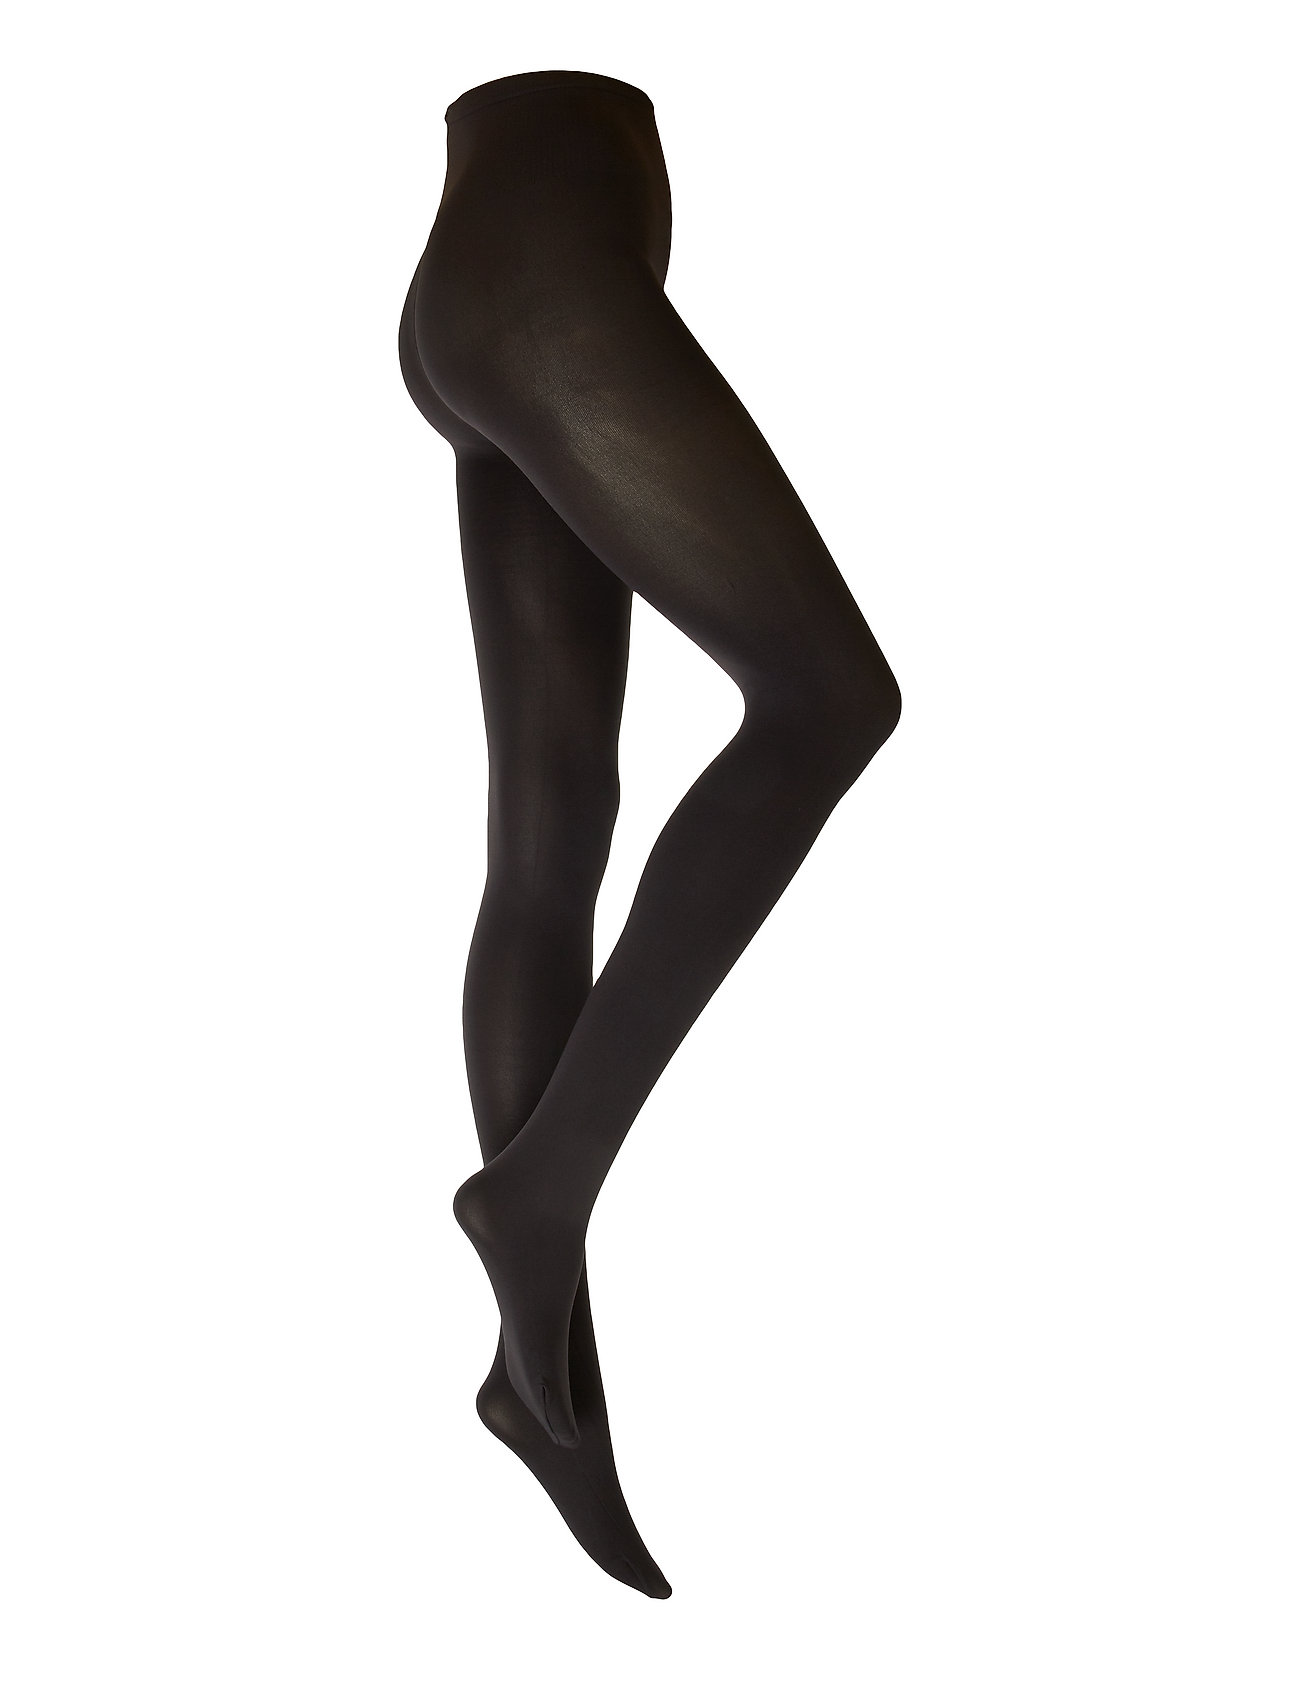 4527b82a4 Lia Premium Tights 100d (Nearly Black) (£24) - Swedish Stockings ...